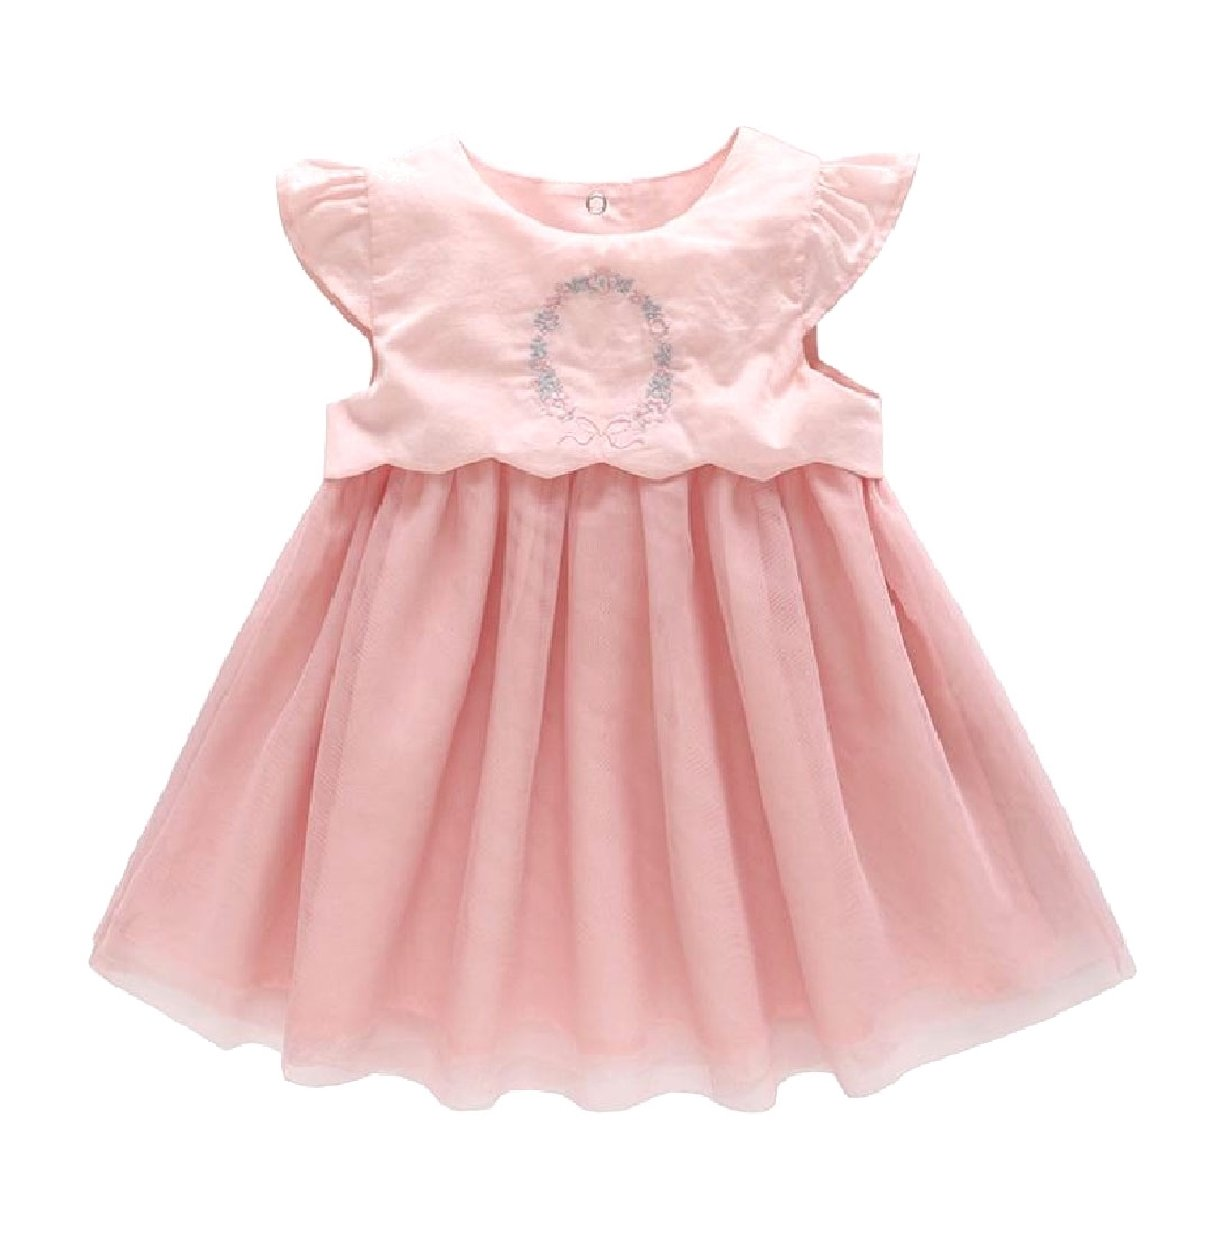 Howme Kid Girl Stitch Fine Cotton Embroidery Party Wedding Dresses Pink 9-12M